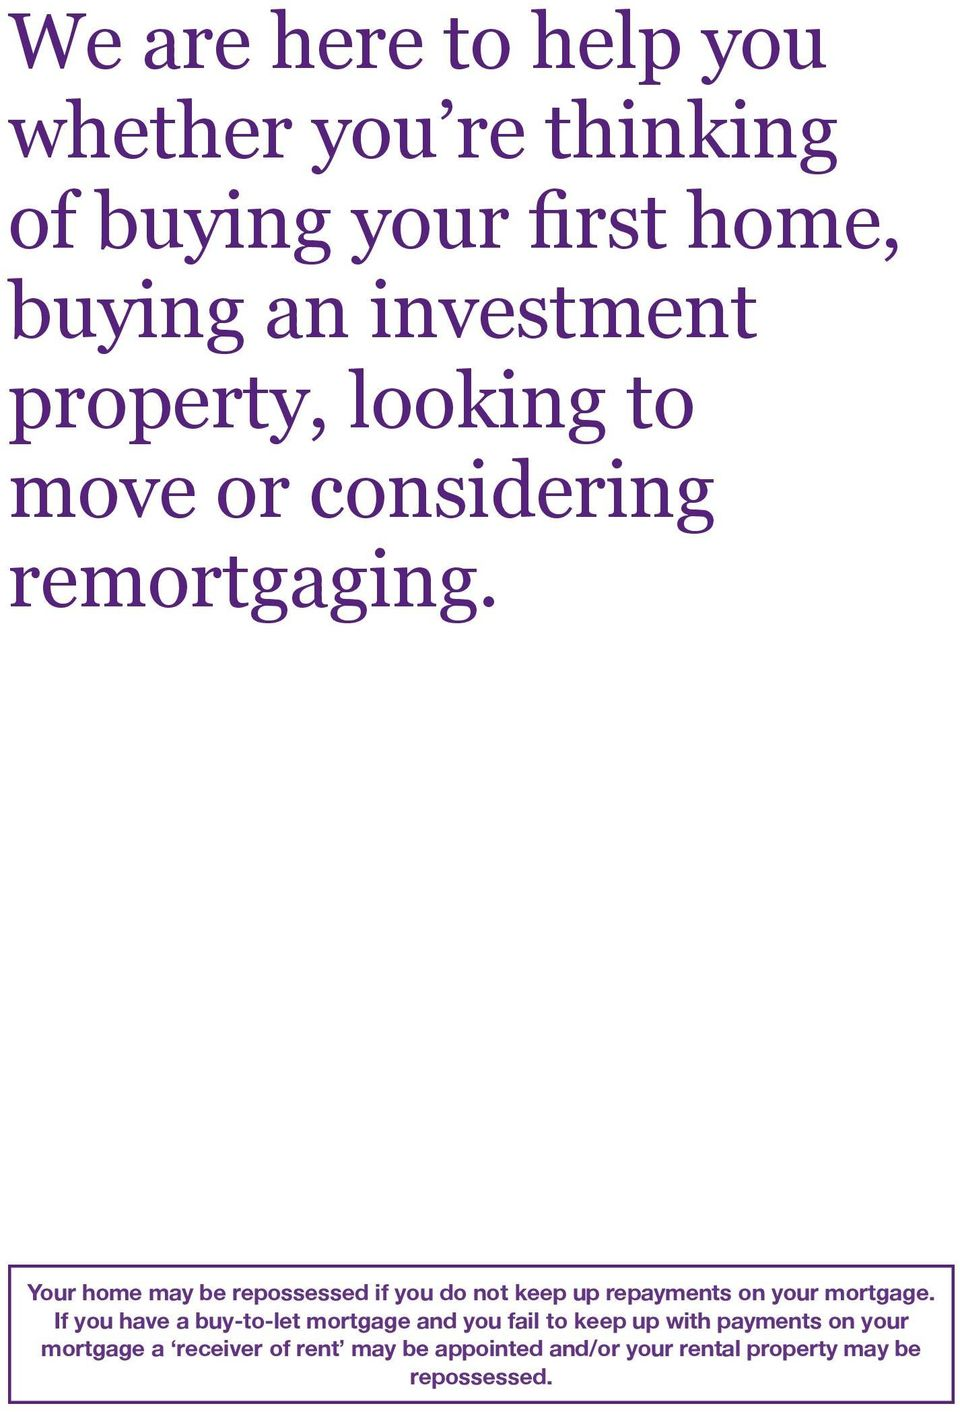 Your home may be repossessed if you do not keep up repayments on your mortgage.